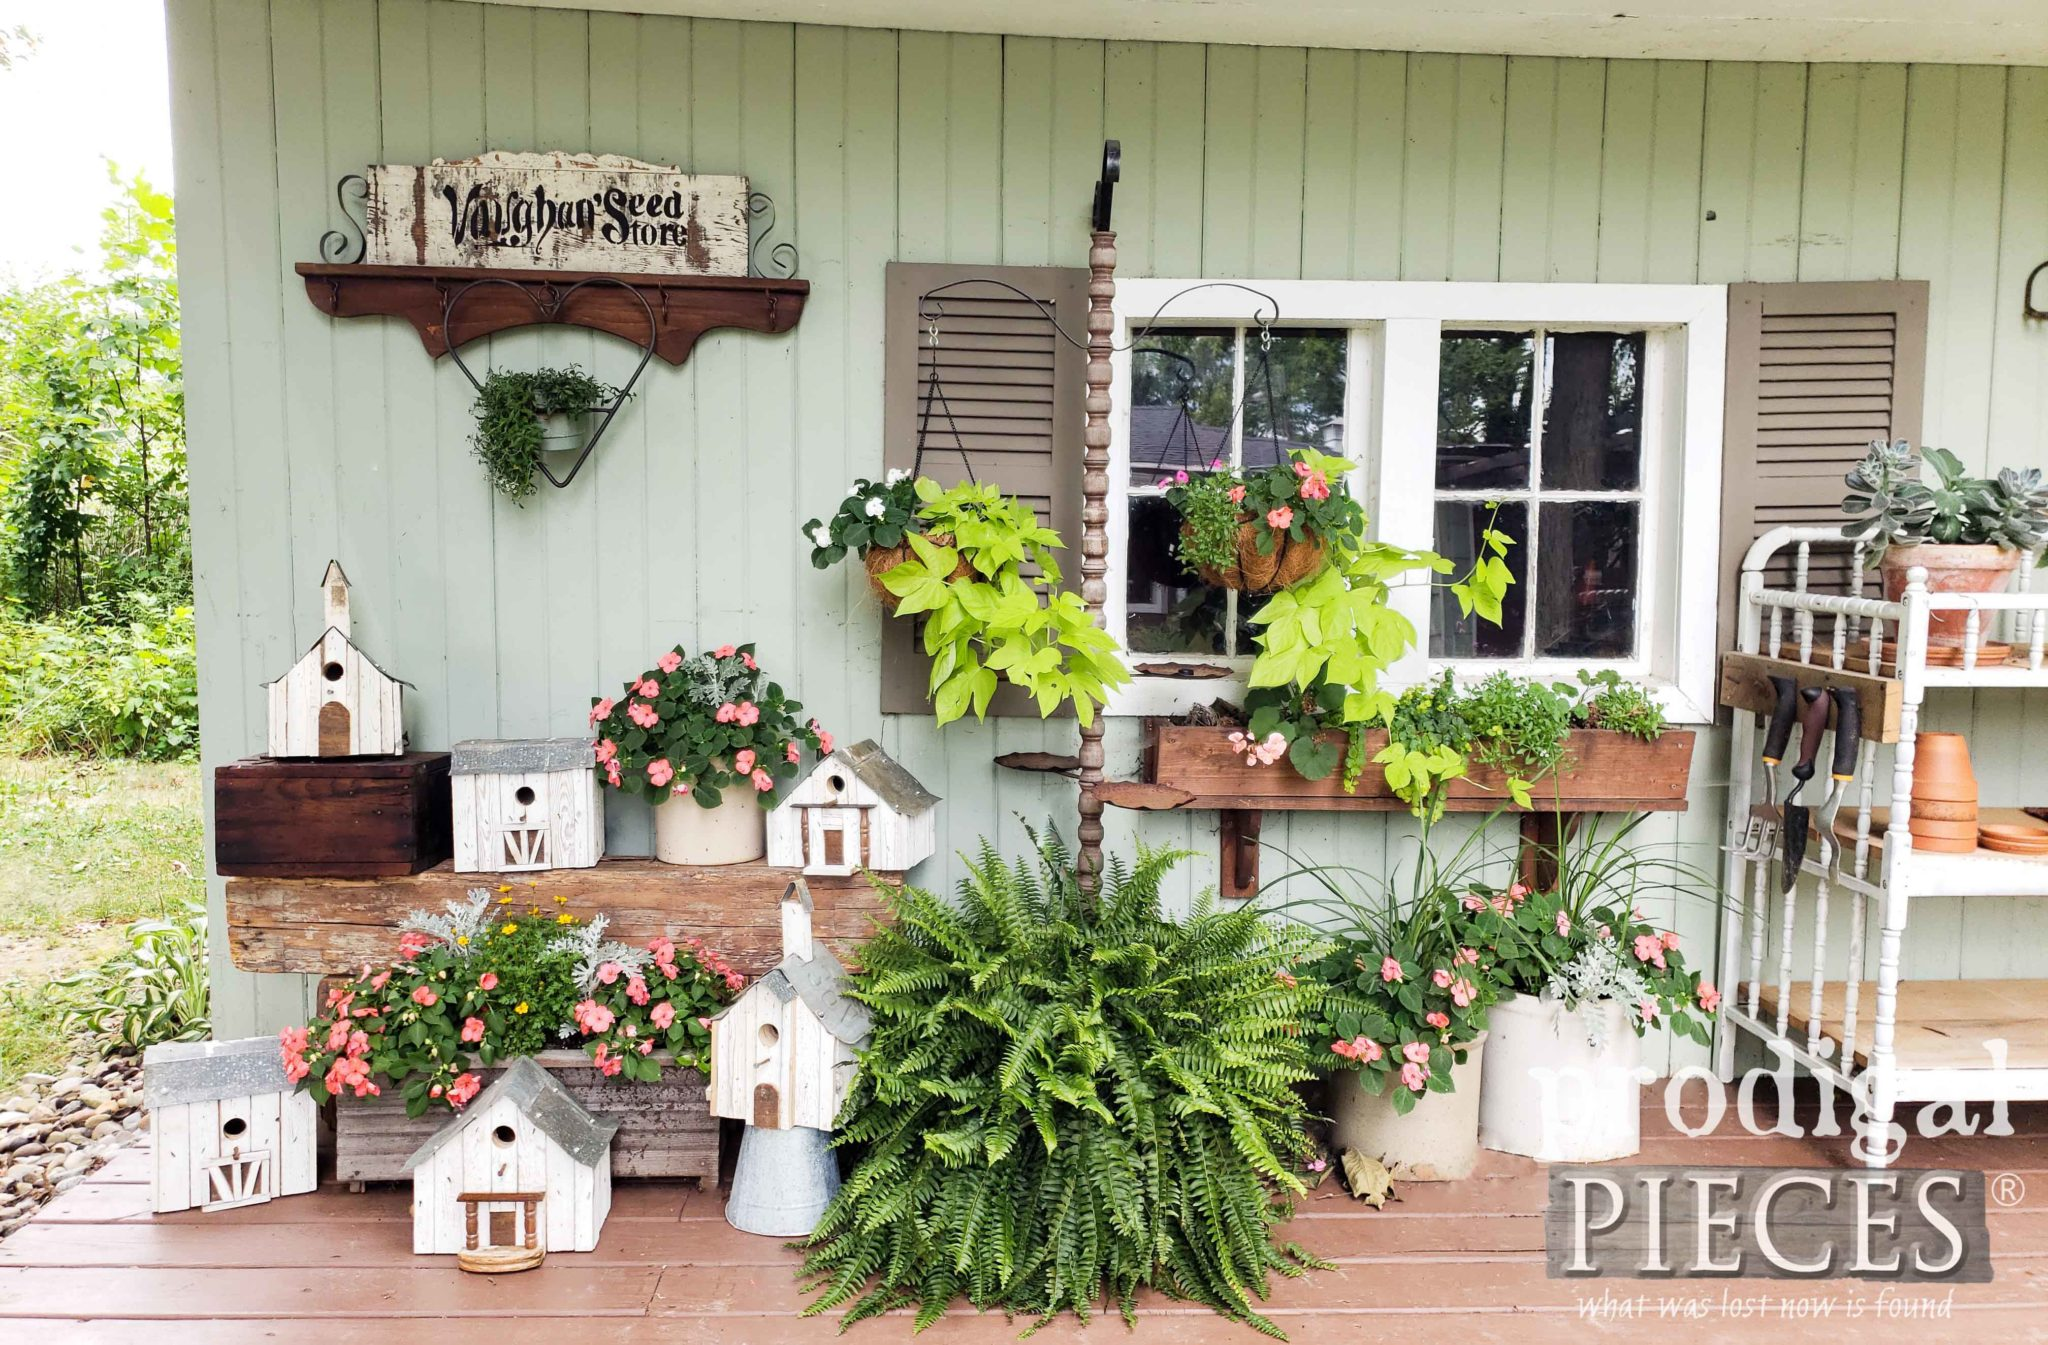 Garden Shed Display of Salvaged Junk Birdhouses Handmade by Larissa of Prodigal Pieces | prodigalpieces.com